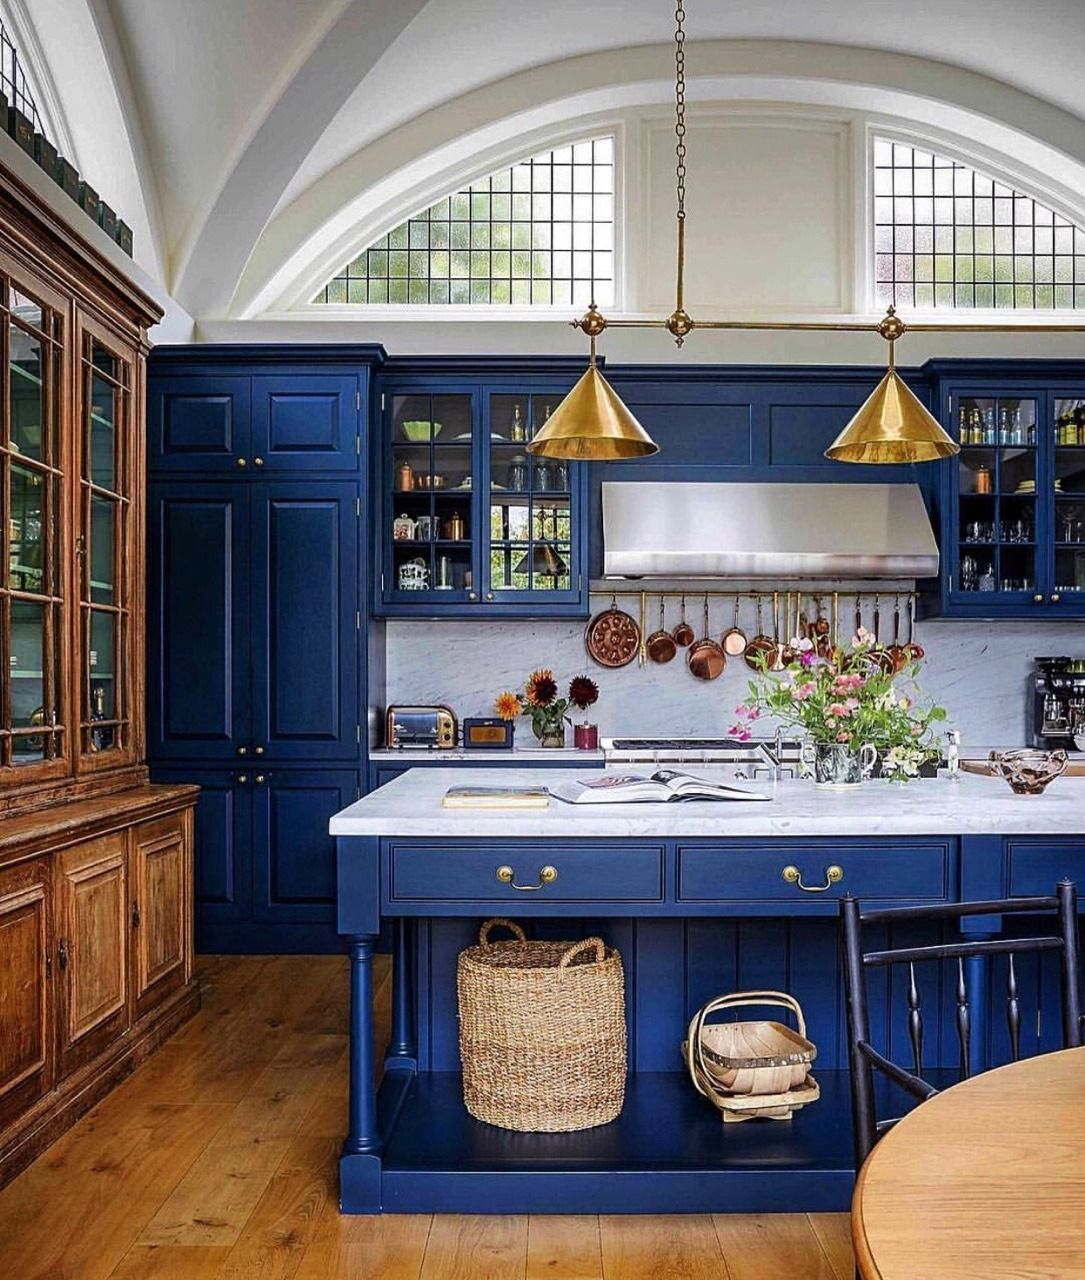 Royal Kitchen Design: Great Old World Style Kitchen With Royal Blue Cabinets